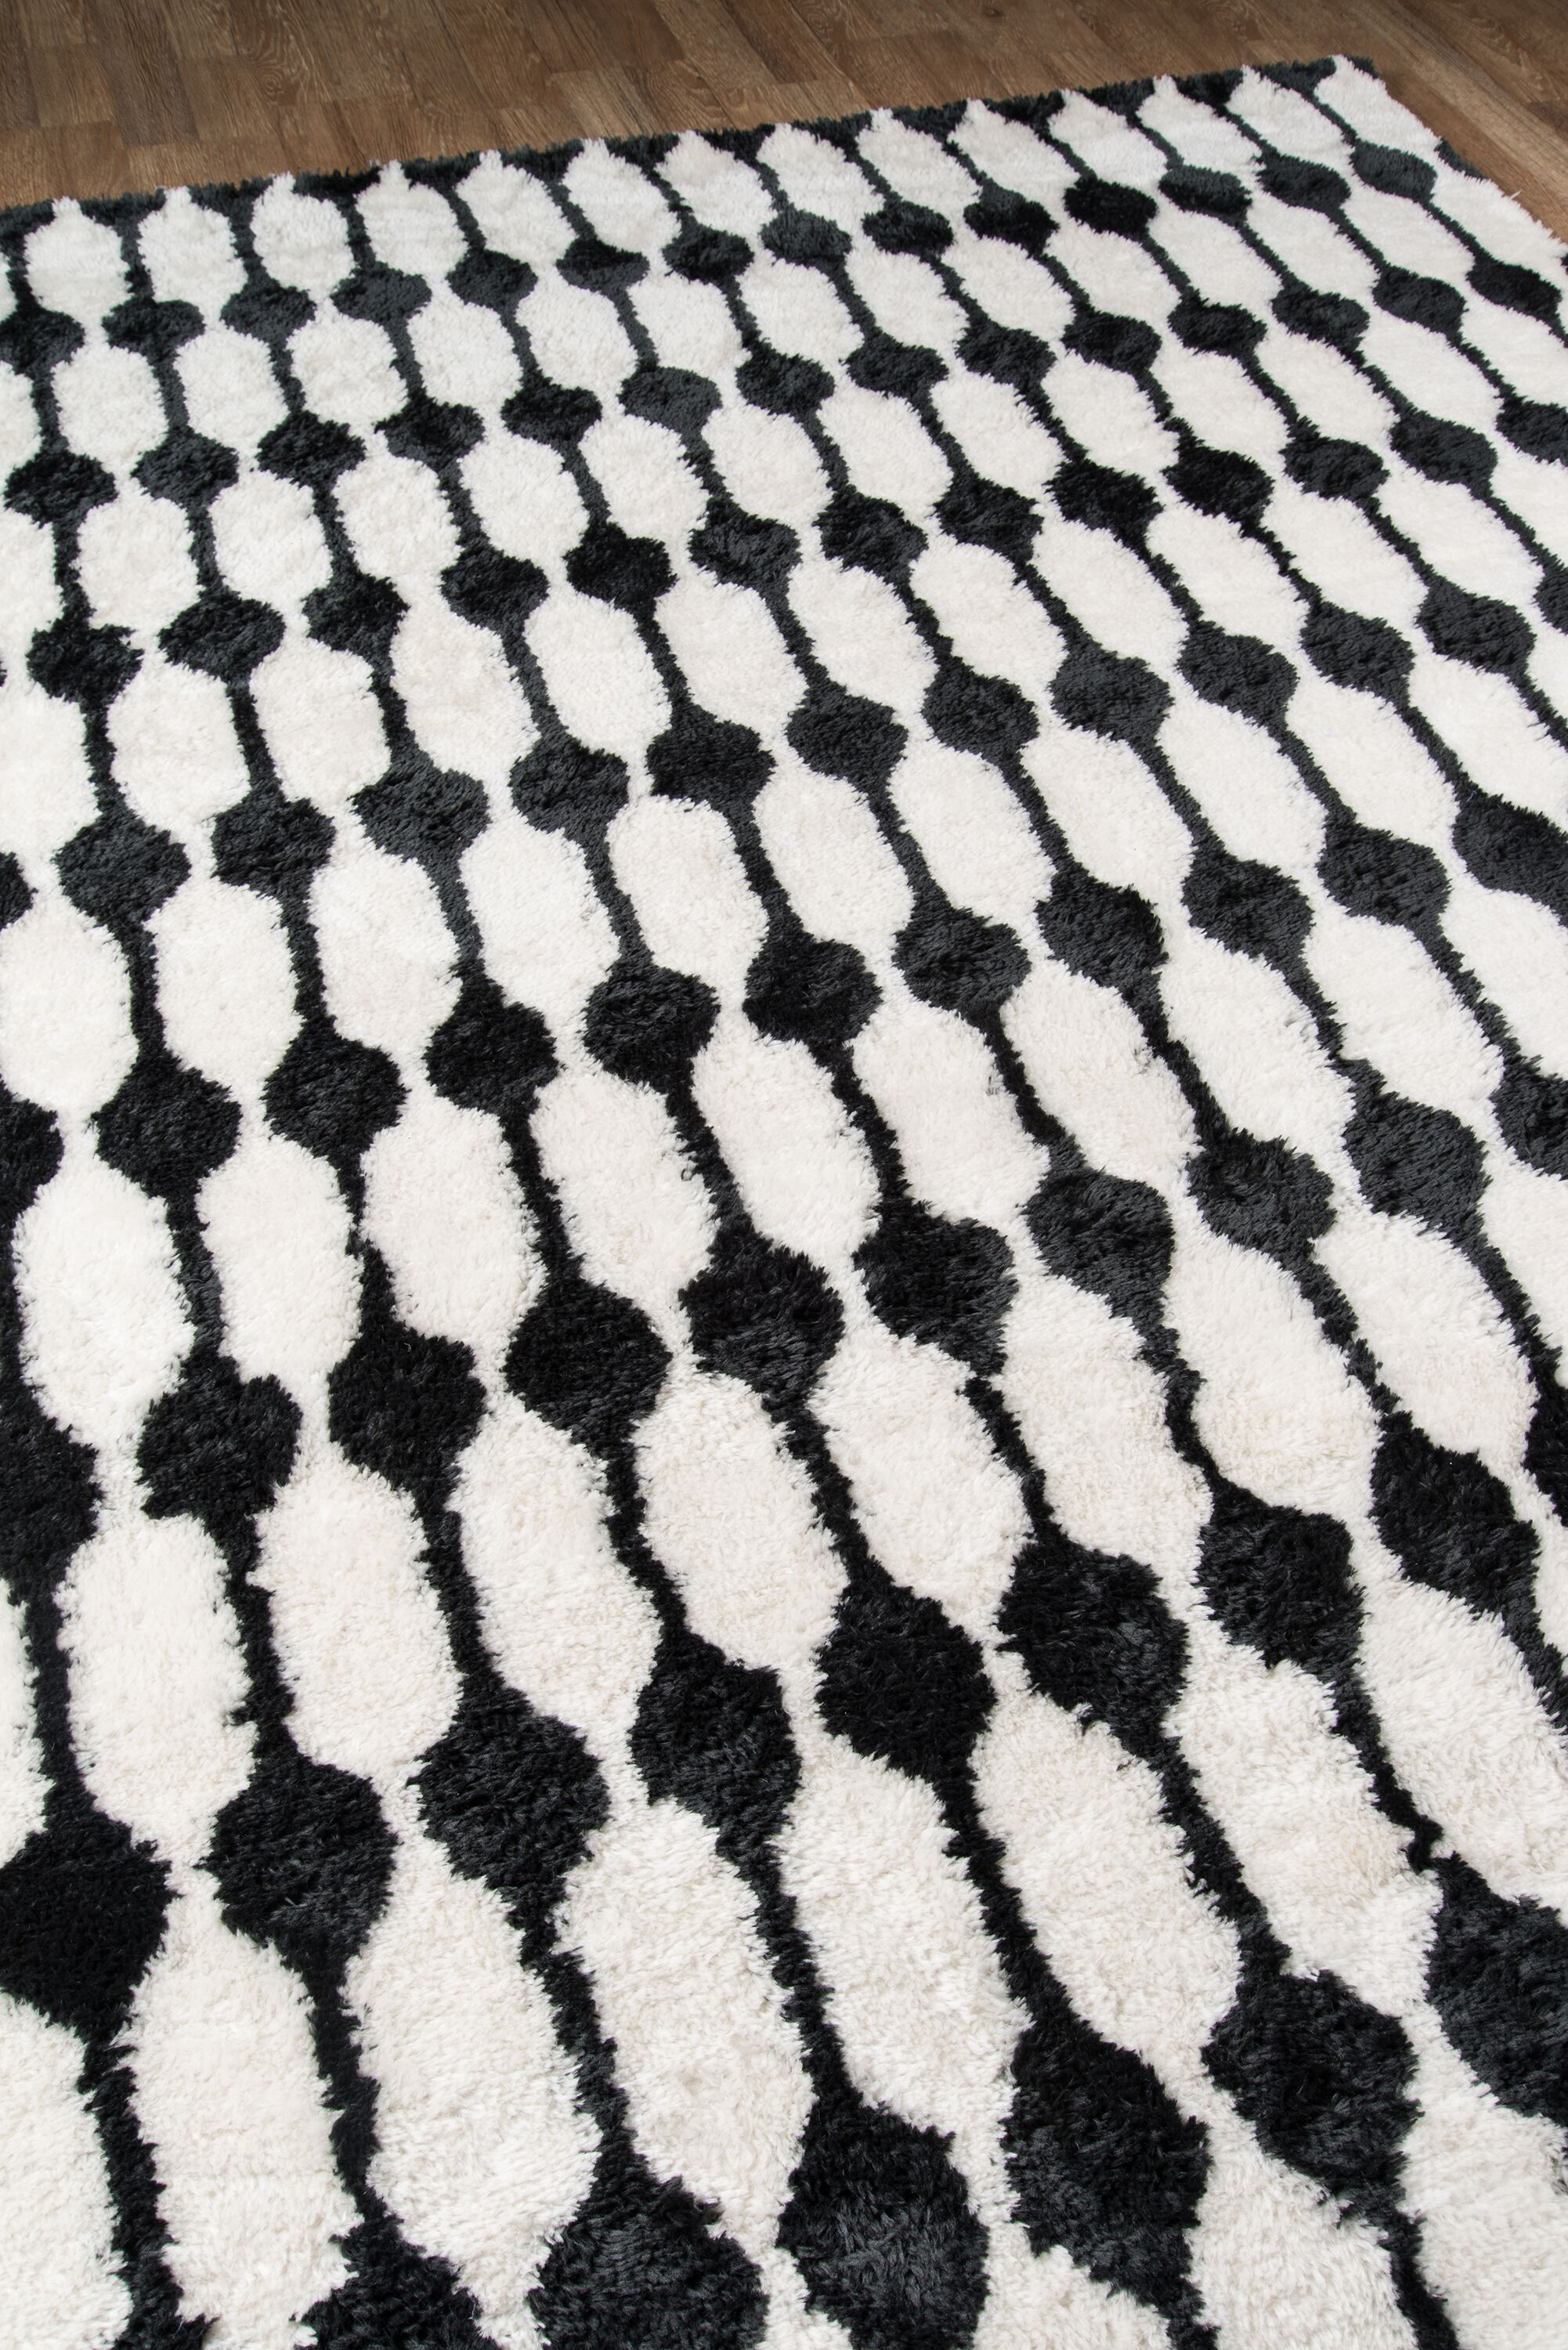 Hand-Tufted Black/White Area Rug Rug Size: Rectangle 5' x 7'6